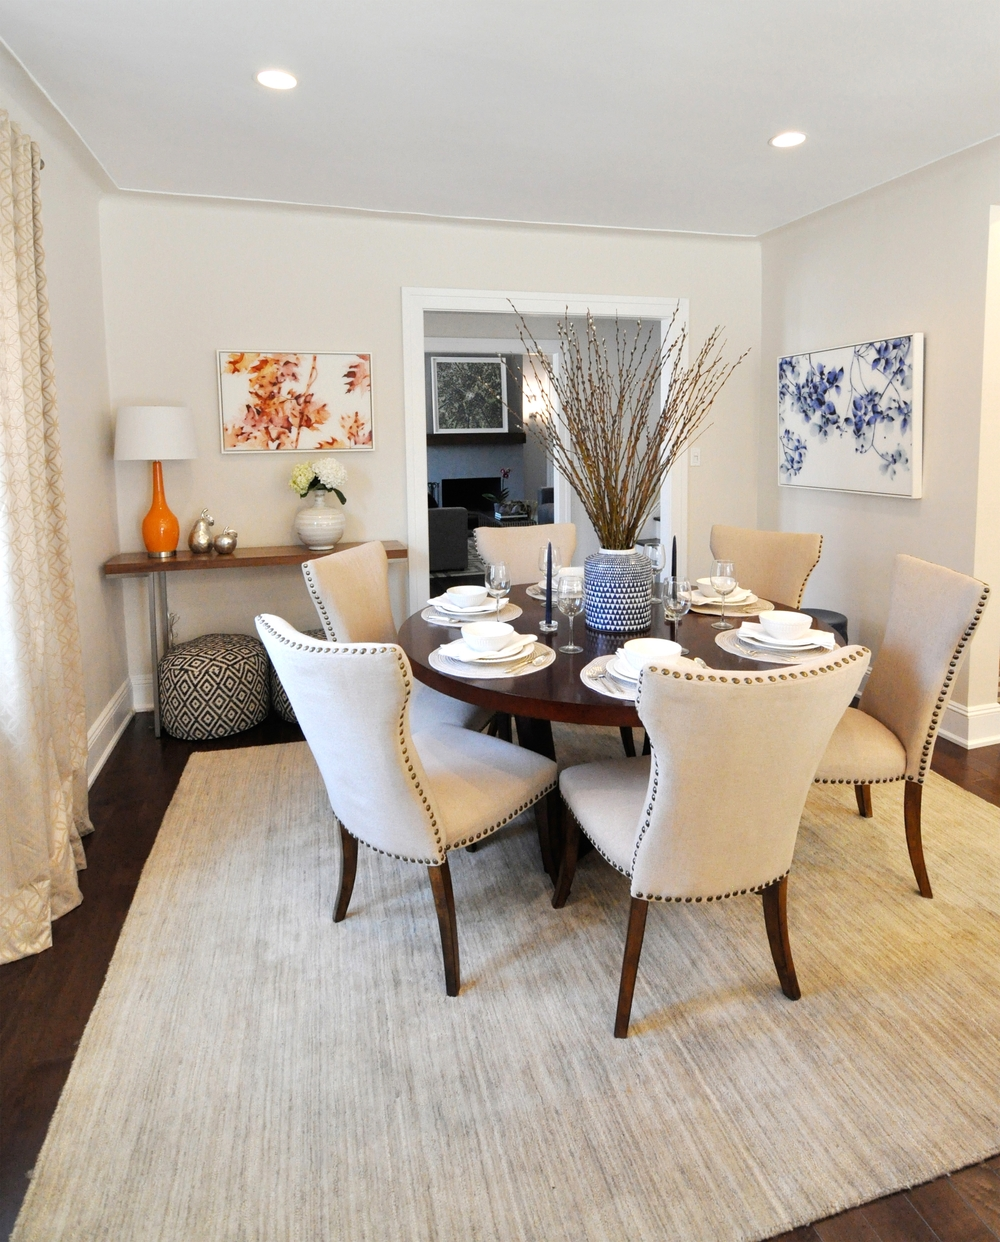 Kim Mitchell Production Designer_Dining Room Design_Neutral Color Palette_Art in Dining Room_Reveal_HGTV_Buying and Selling with The Property Brothers_Season 3_Episode 315.jpg